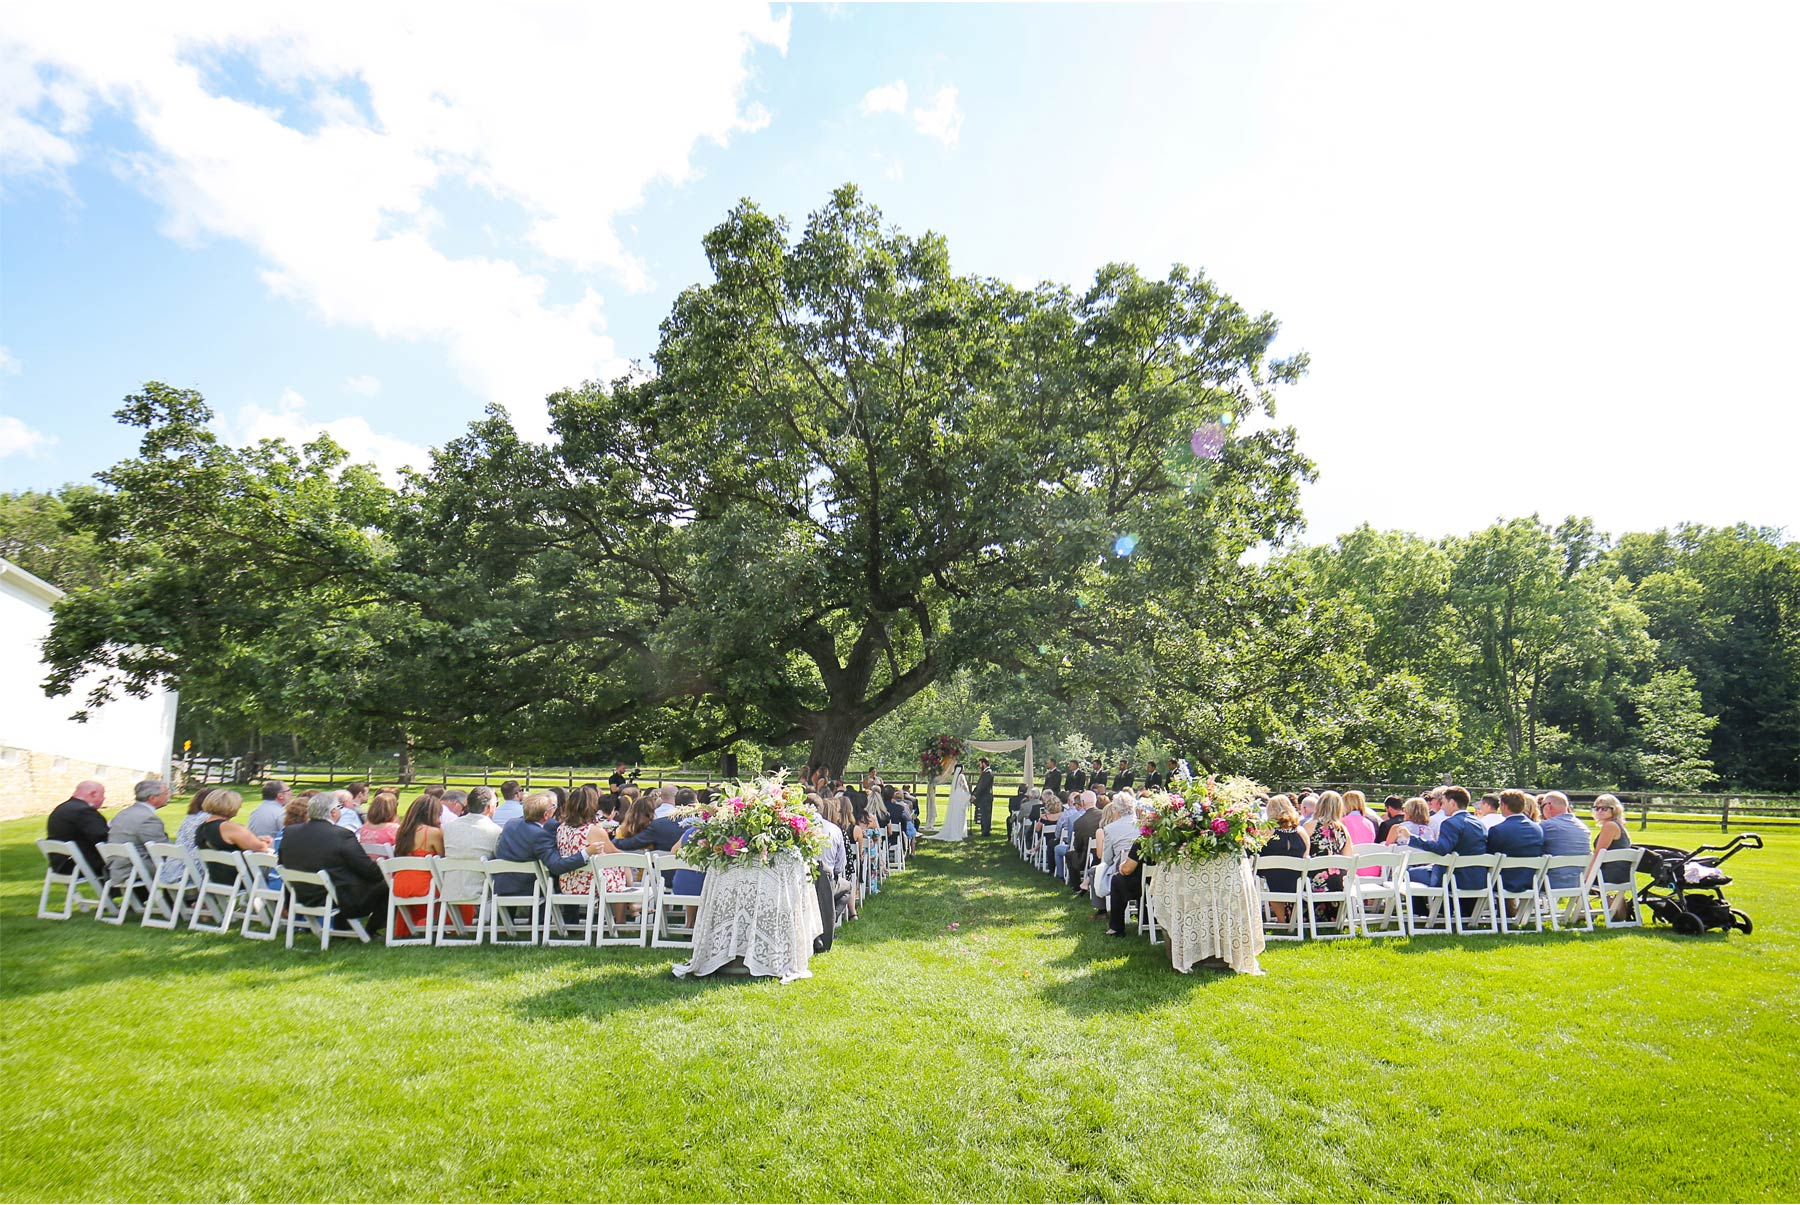 15-Vick-Photography-Rochester-Minnesota-Mayowood-Stone-Barn-Country-Wedding-Summer-Outdoor-Ceremony-Tree-Lizz-and-Brady.jpg